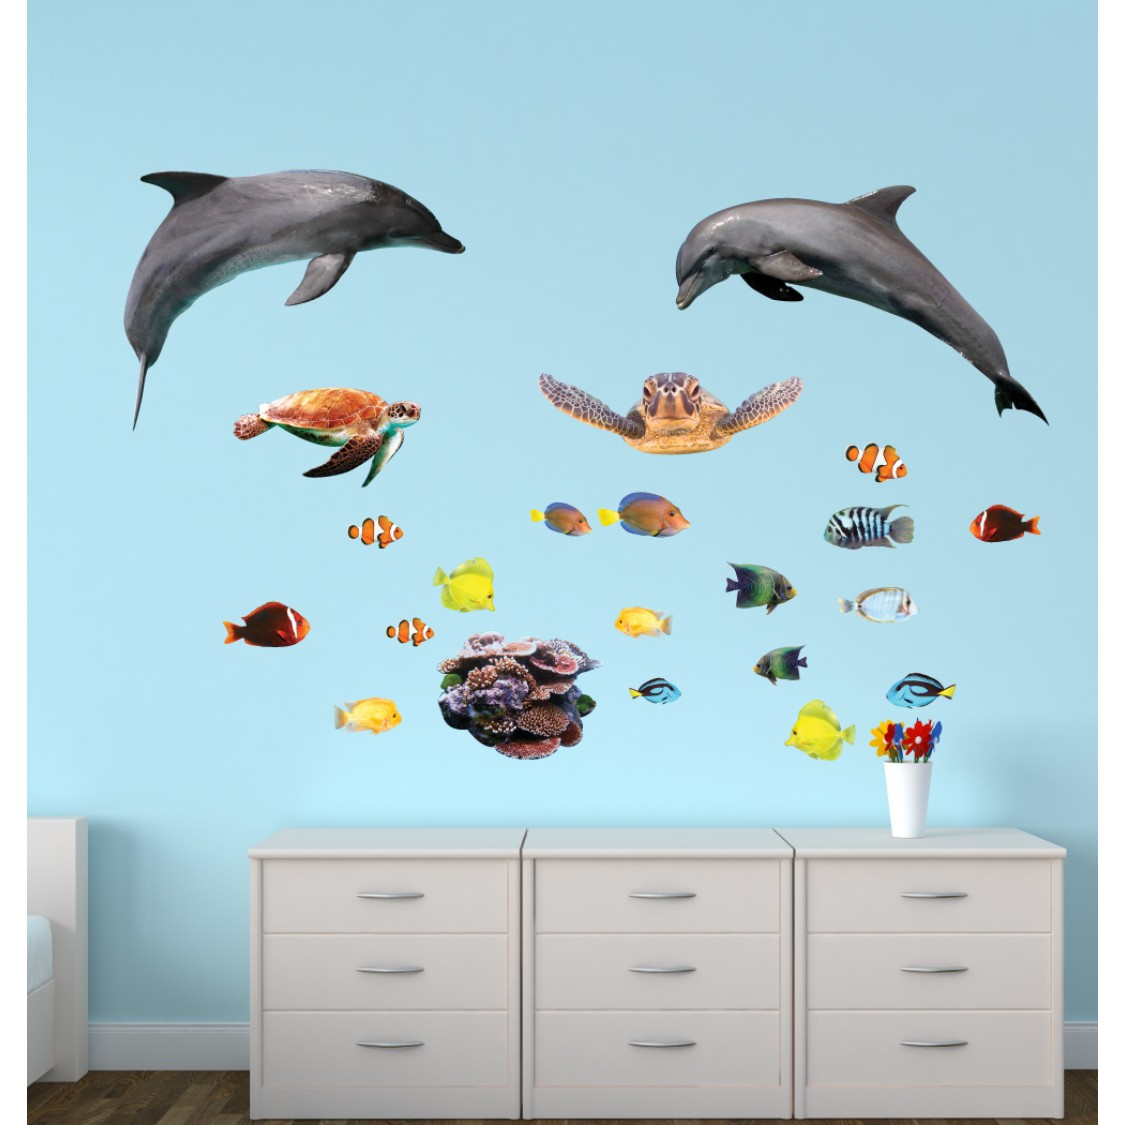 Giant Wall Stickers With Sharks Sticker For Kids